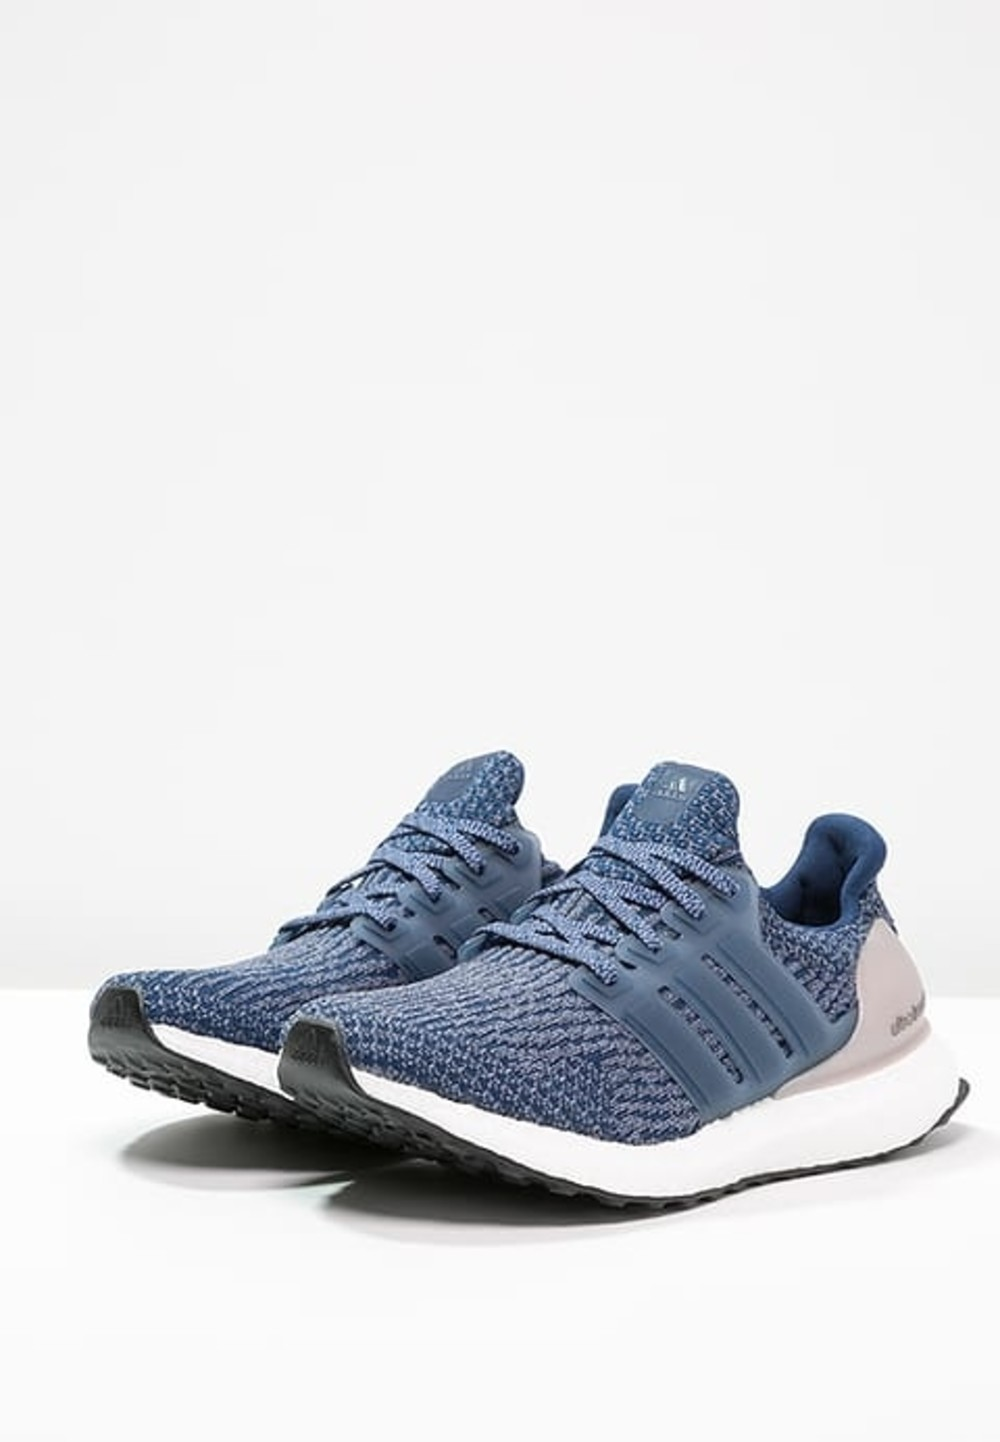 Another Look At The Adidas Ultra Boost 3.0 In Blue And Silver